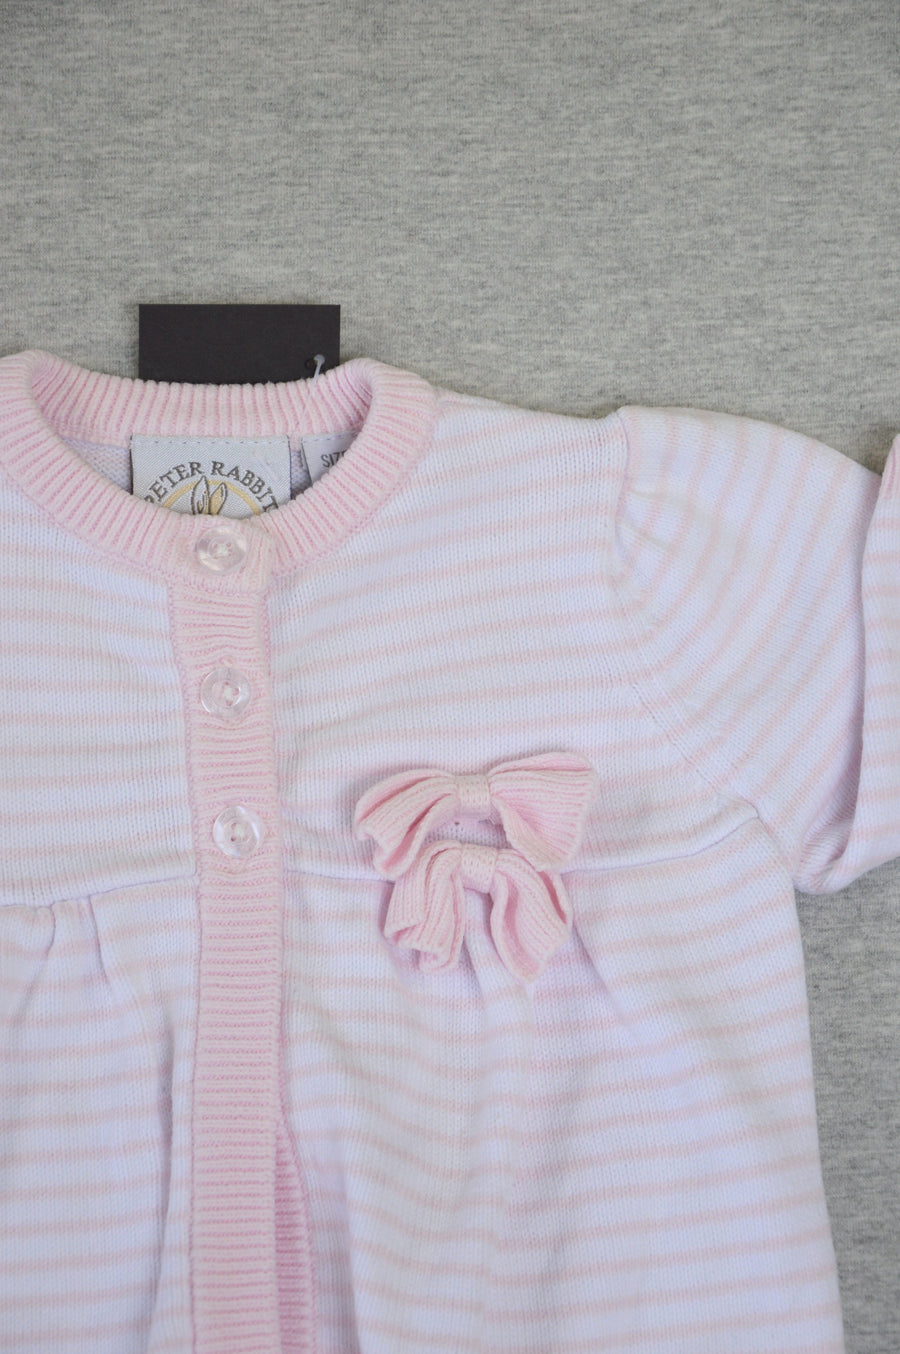 Peter rabbit - nearly new - pink & white striped knit cardigan, size 3-6m